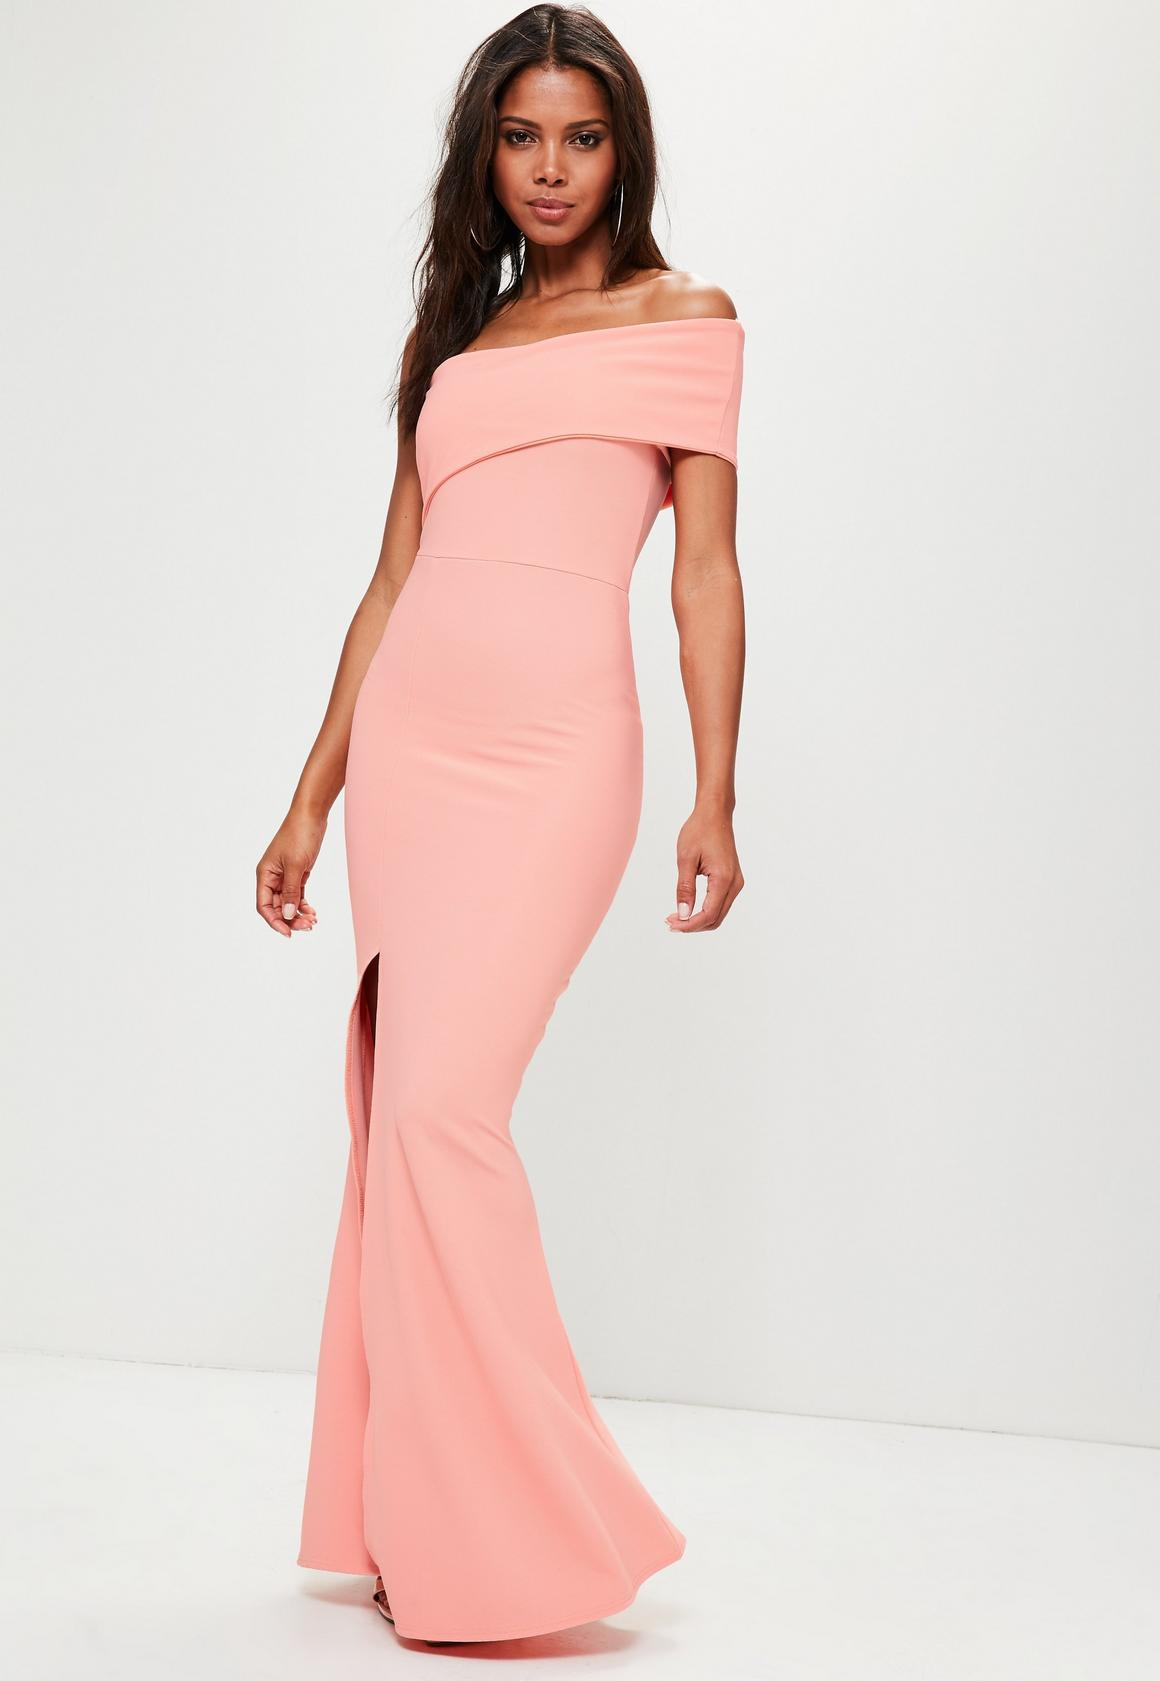 Pink One Shoulder Maxi Dress | Missguided